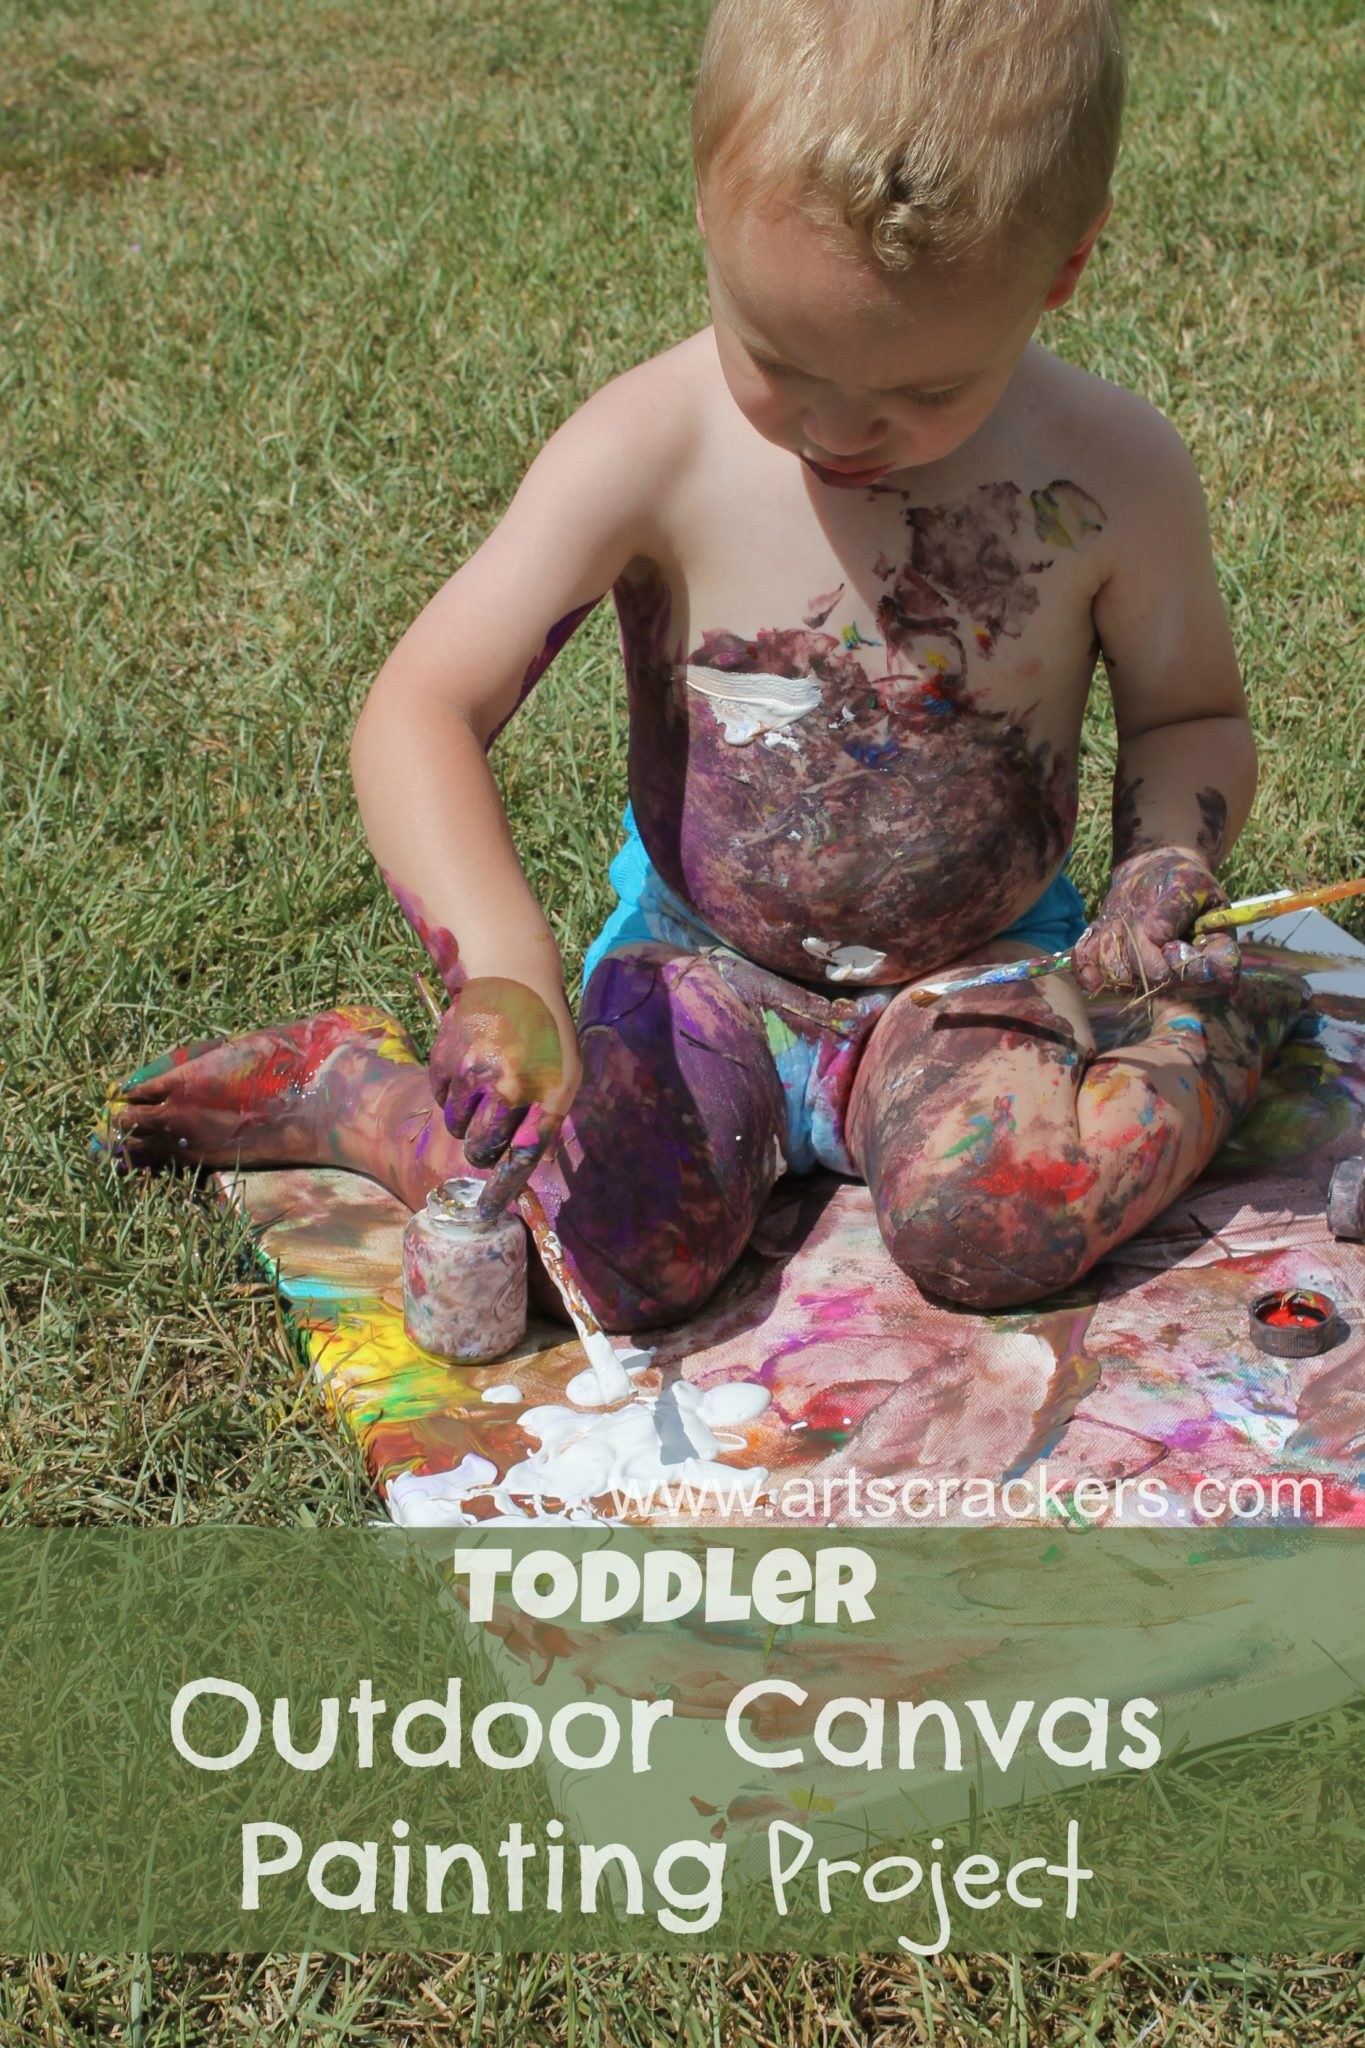 Toddler Outdoor Canvas Painting